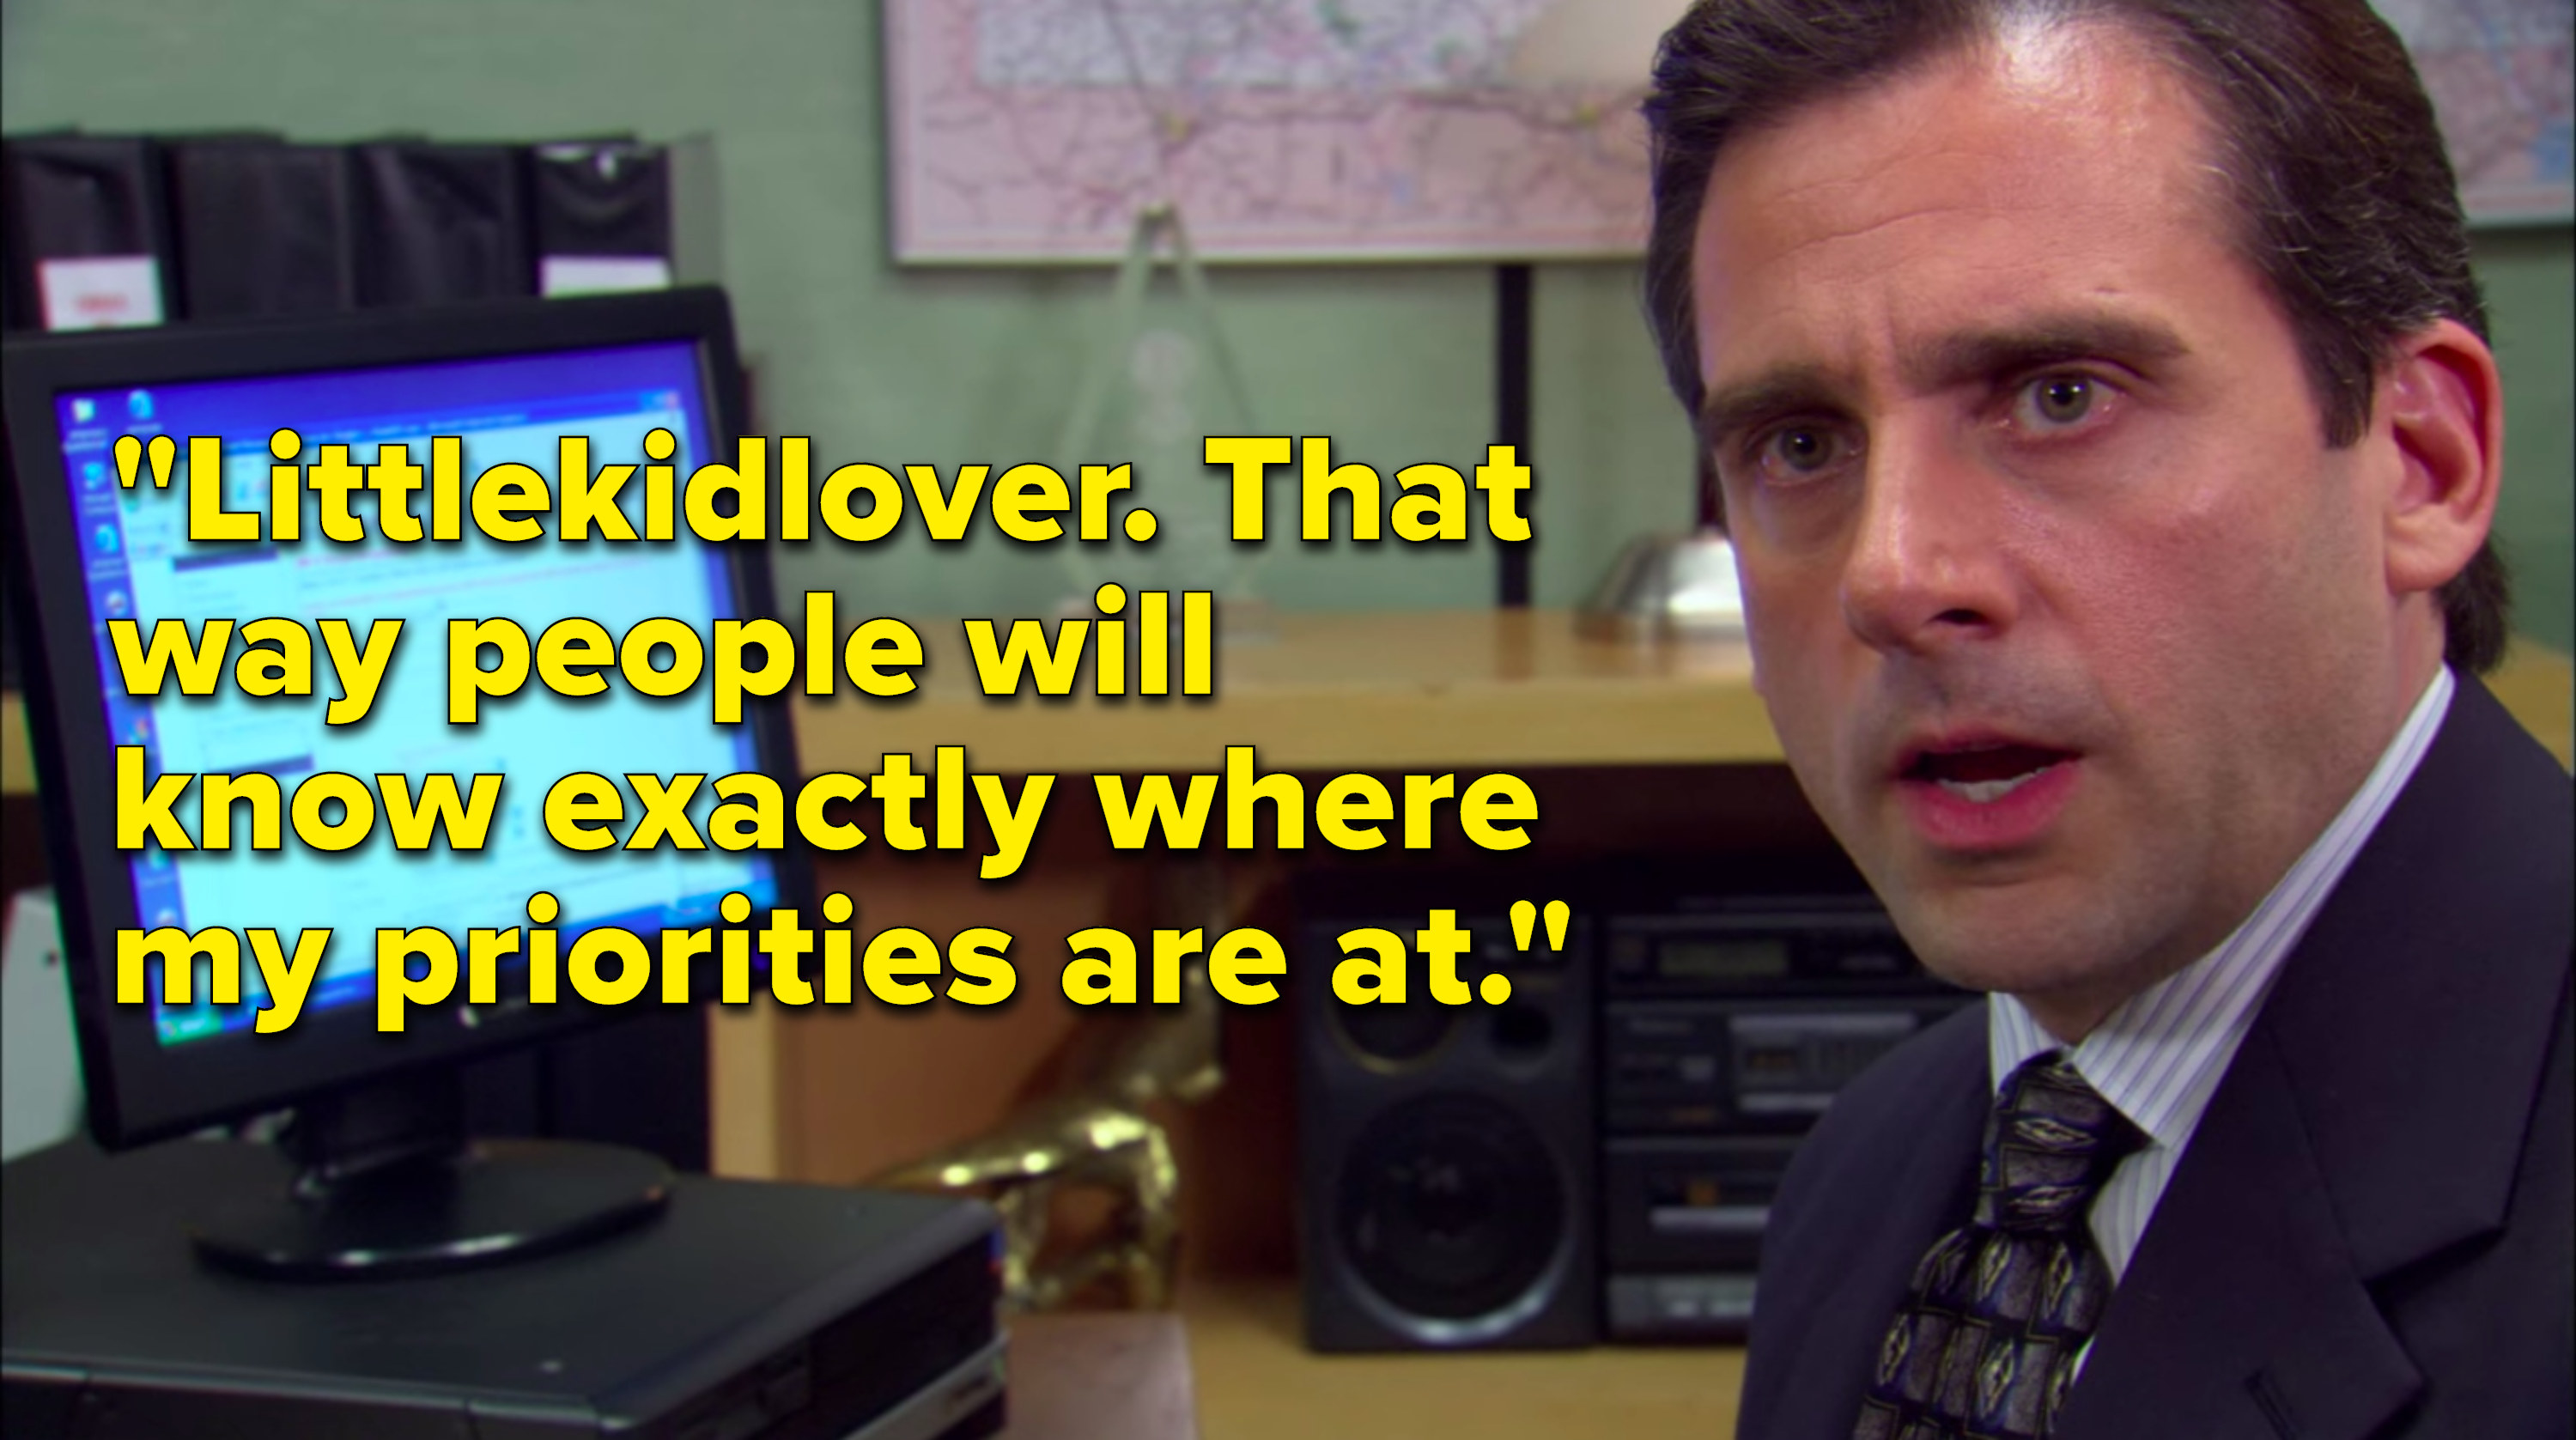 """Michael says, """"Little kid lover, that way people will know exactly where my priorities are at"""""""